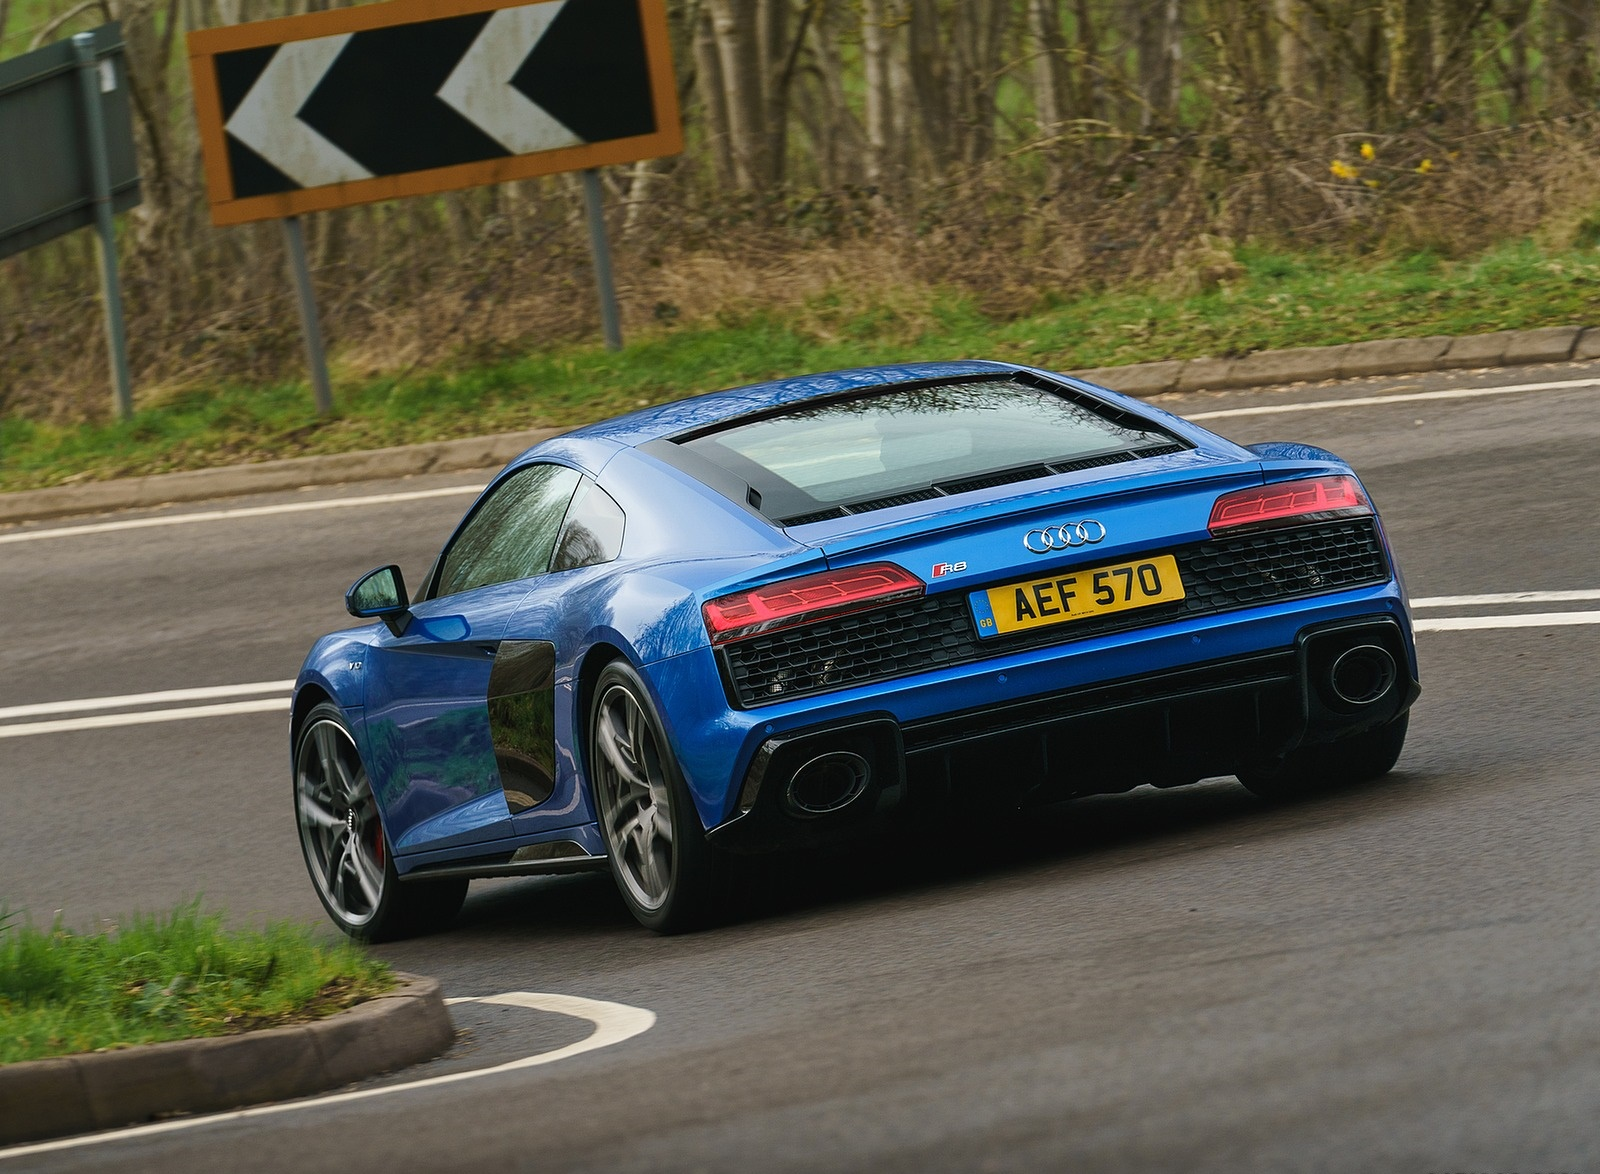 2019 Audi R8 V10 Coupe quattro (UK-Spec) Rear Three-Quarter Wallpaper (10)